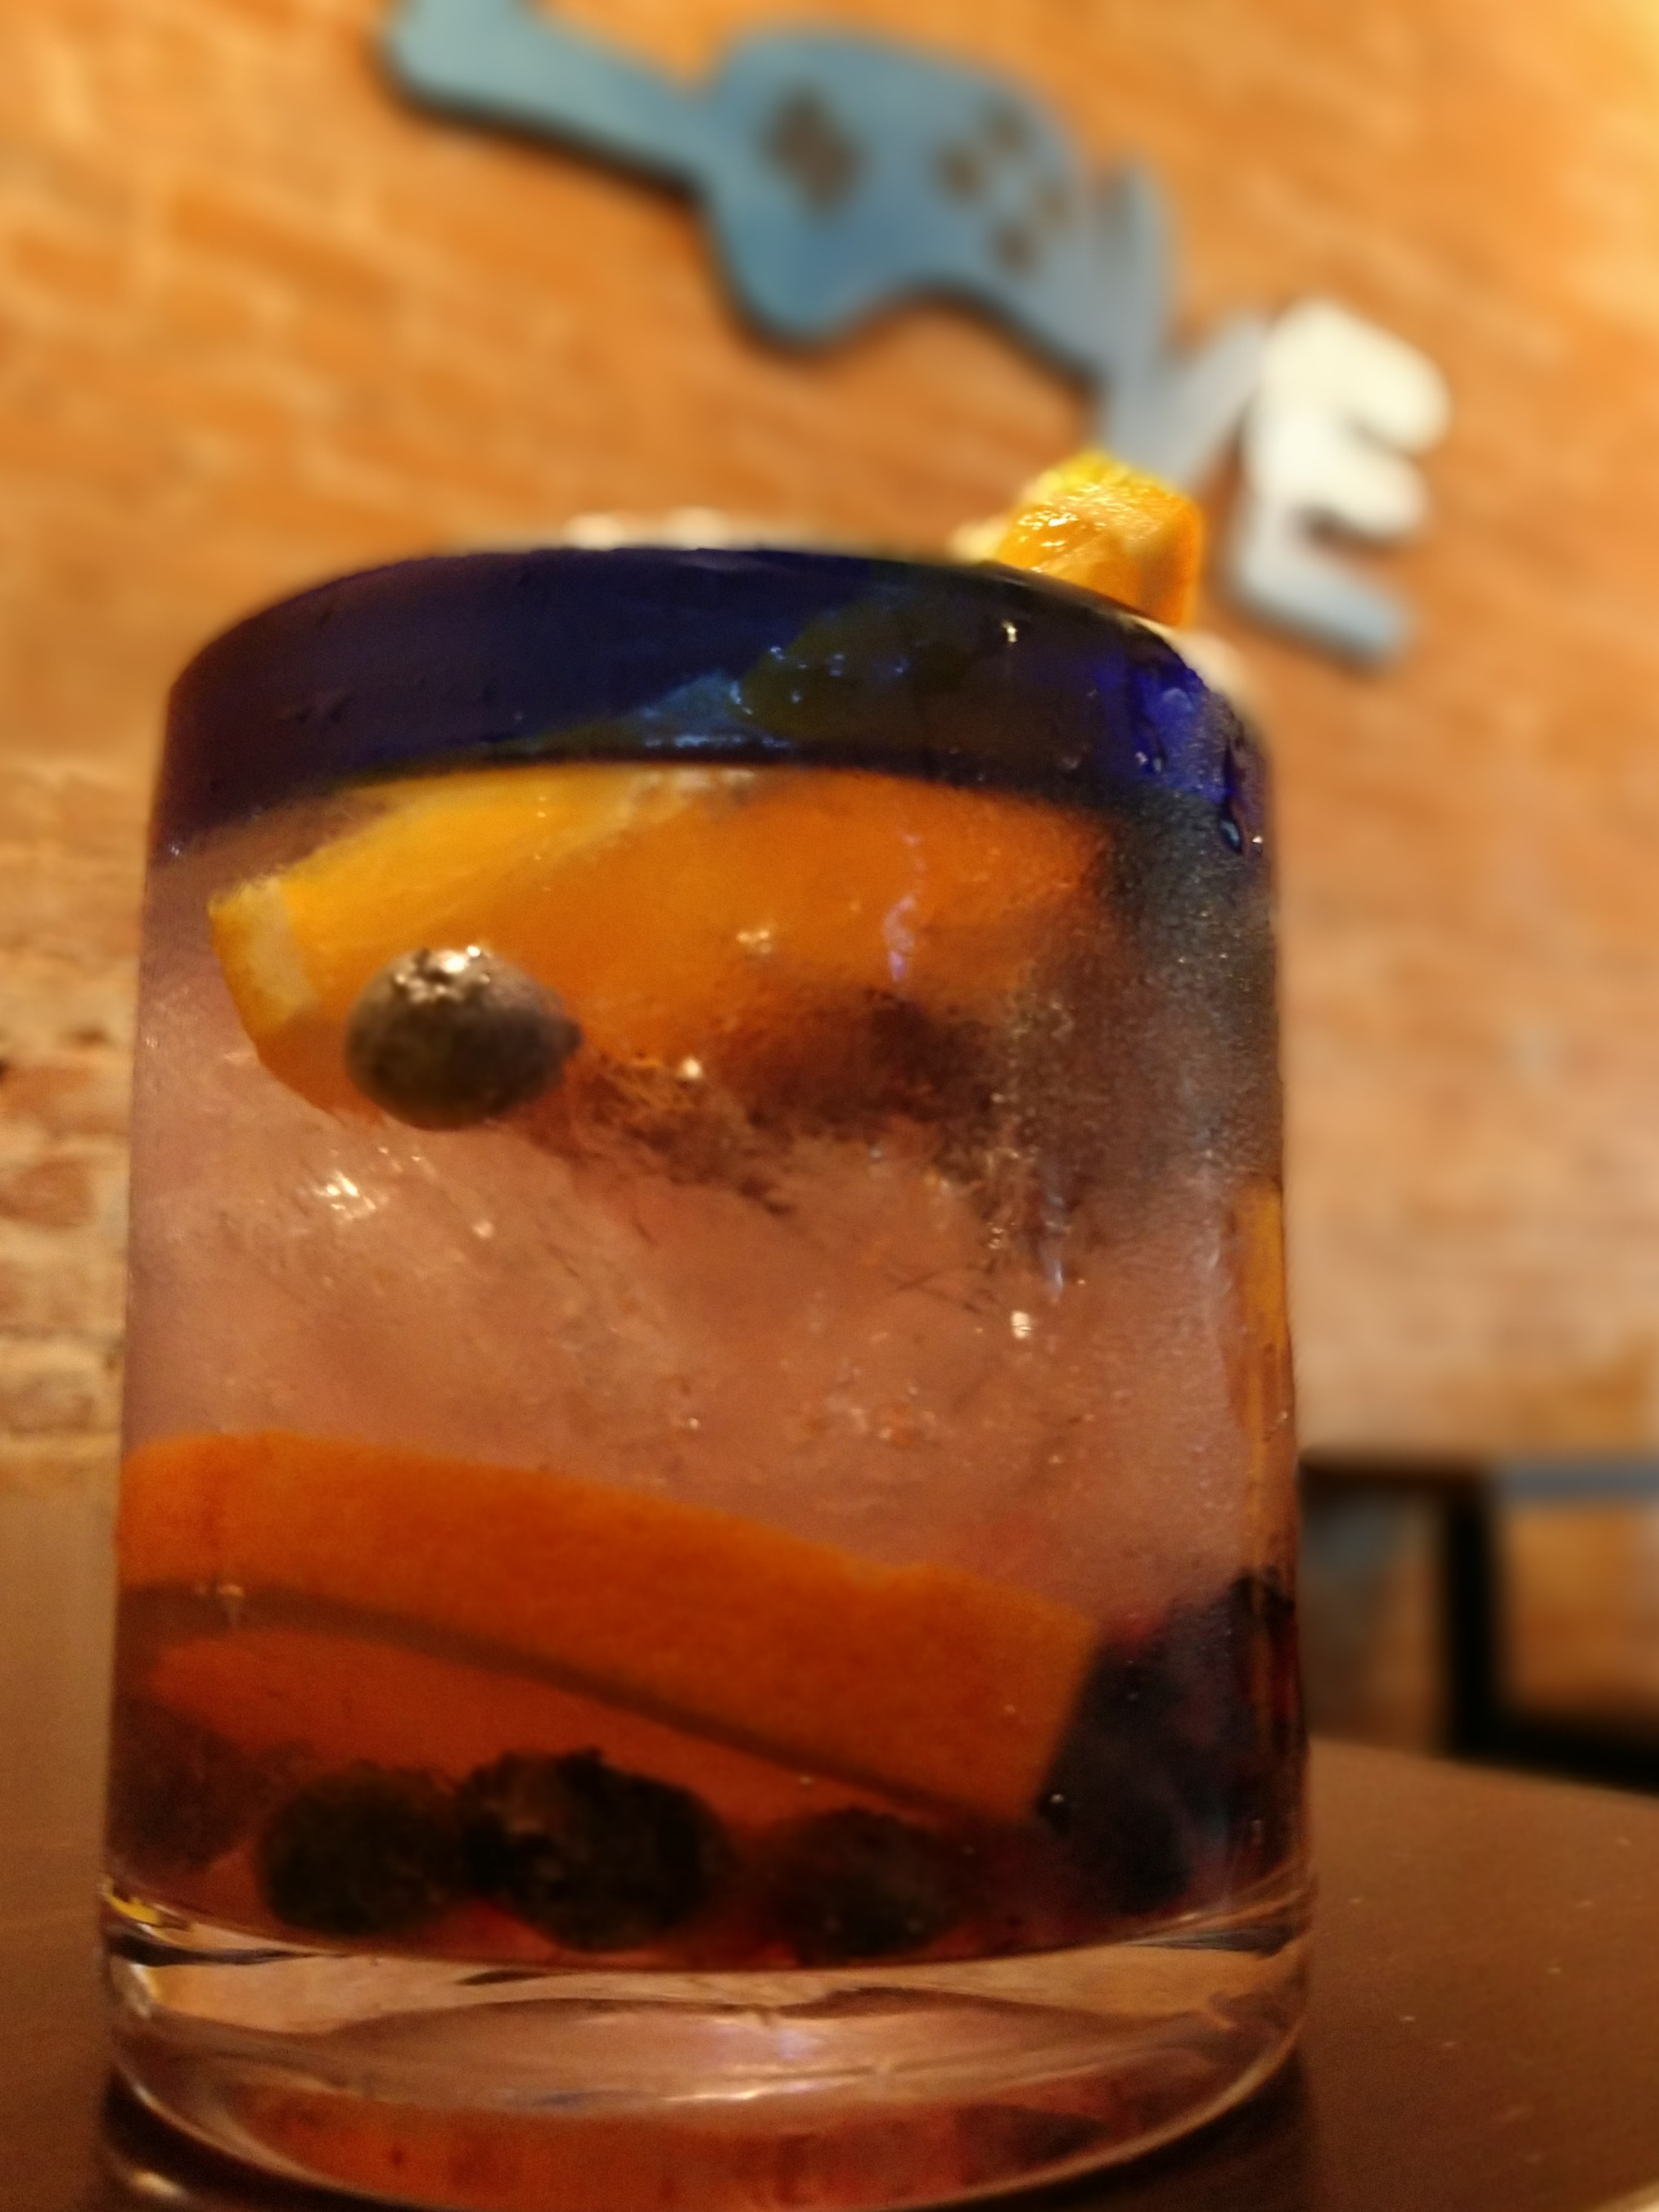 SPYRO'S OLD FASHIONED